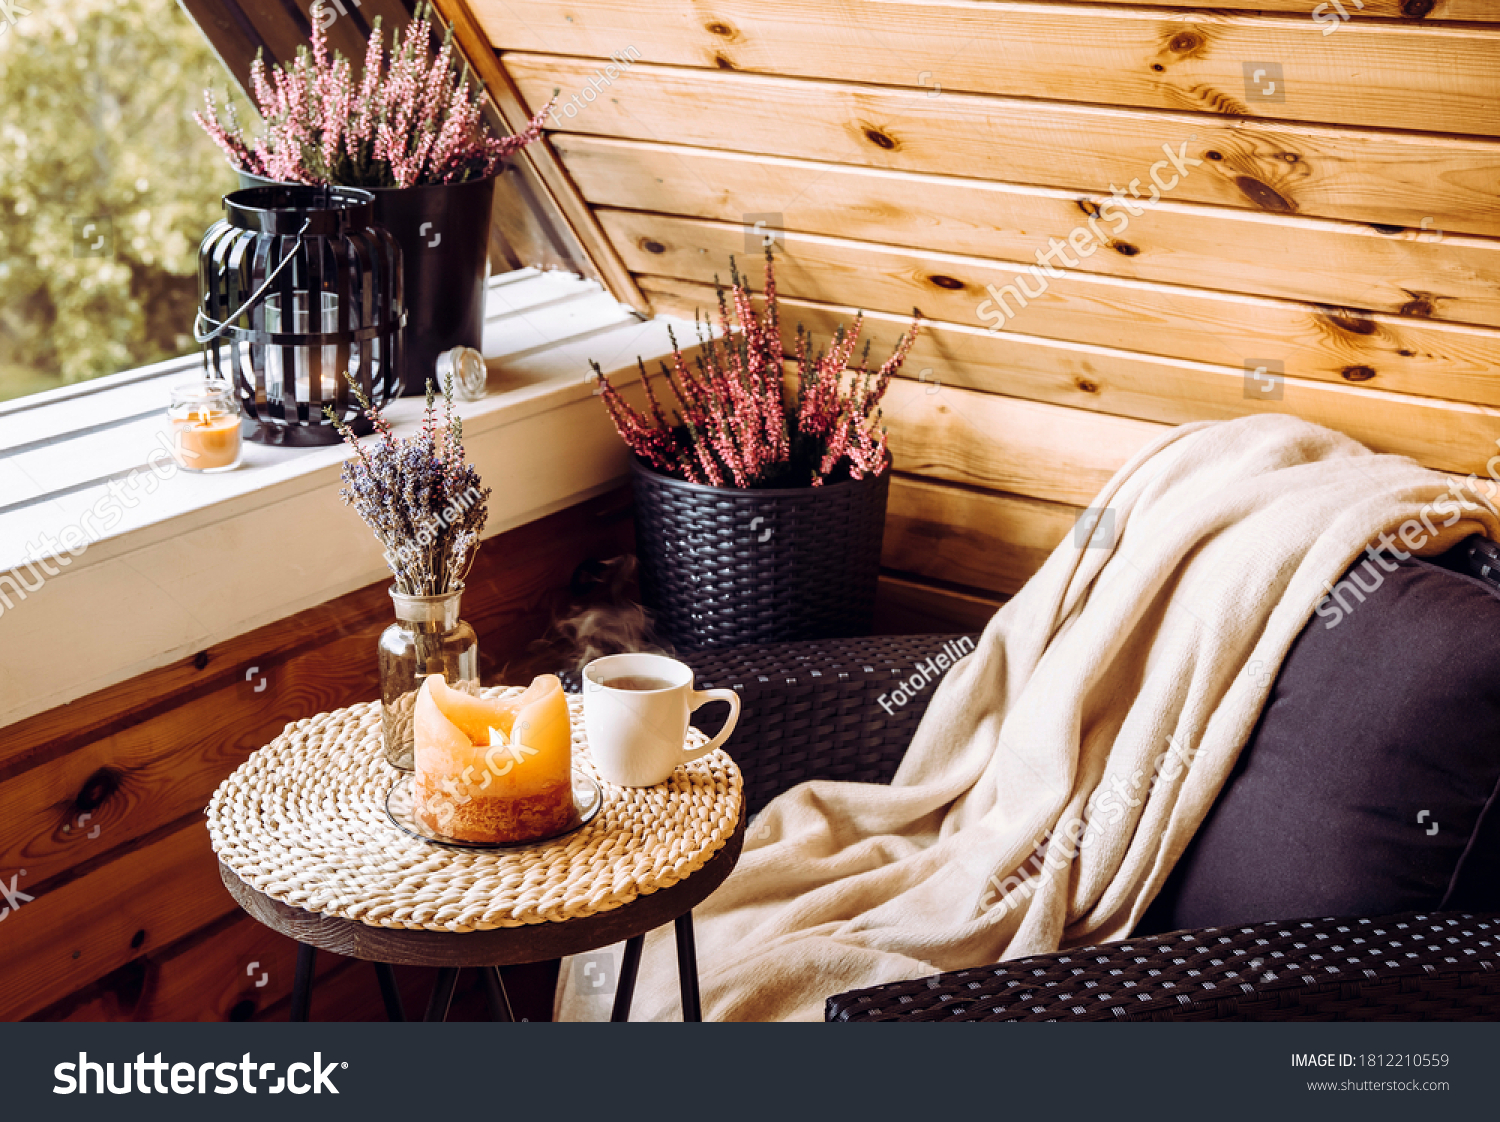 Cute autumn hygge home decor arrangement. Tiny wooden cabin balcony with heather flowers, lavender in bottle vase, candlelight flame, soft beige plaid waiting on comfortable garden furniture chair. #1812210559